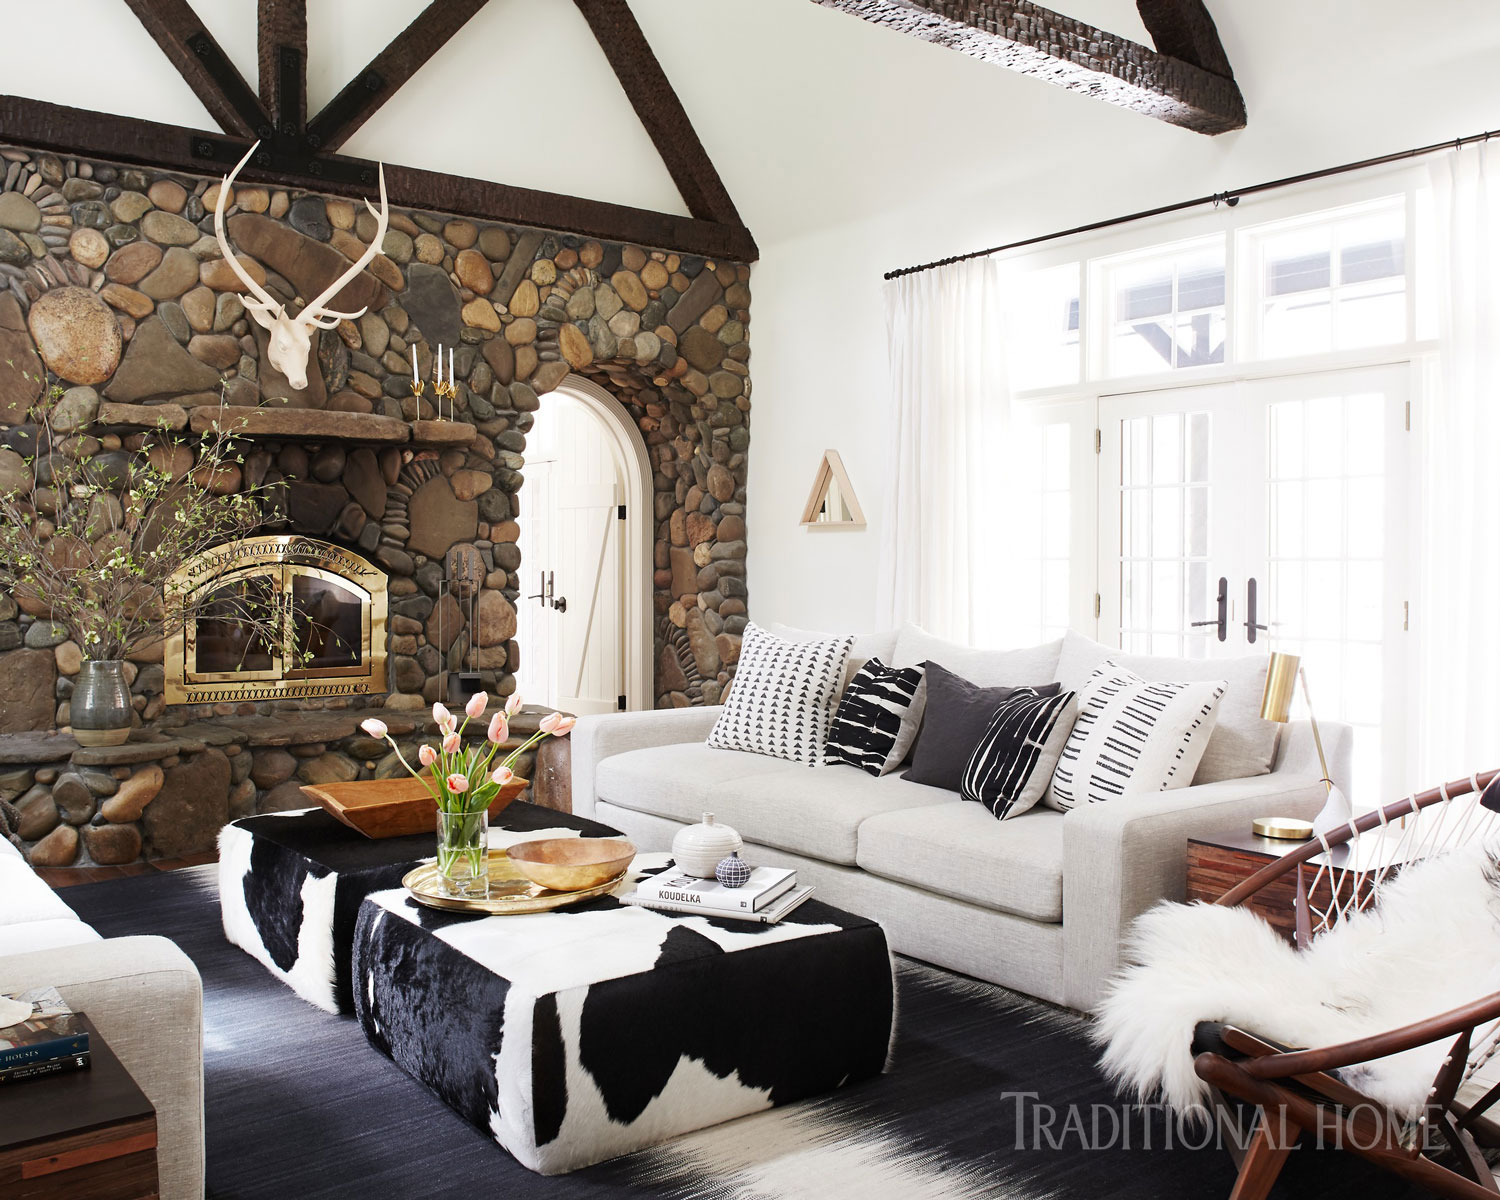 Spirited Tahoe Cabin | Traditional Home